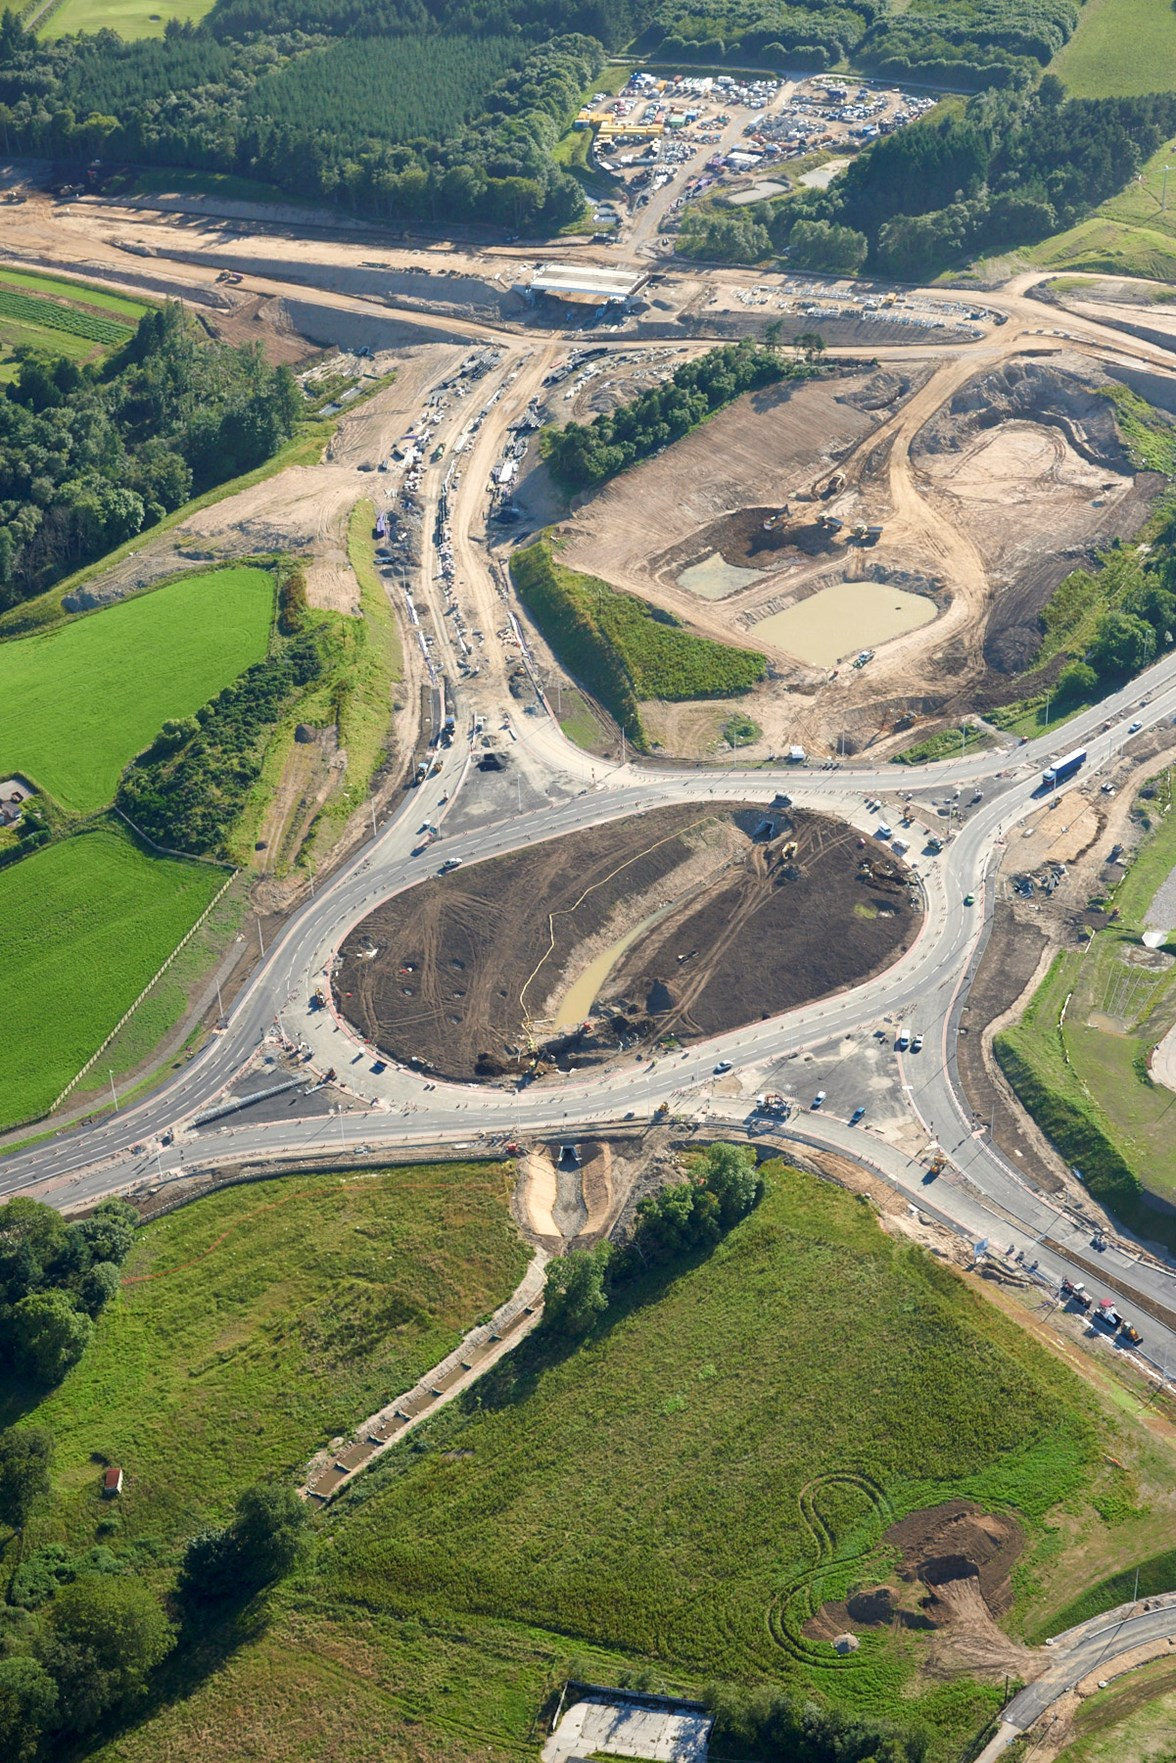 AWPR - Aerial View of Craibstone junction Nearing Completion